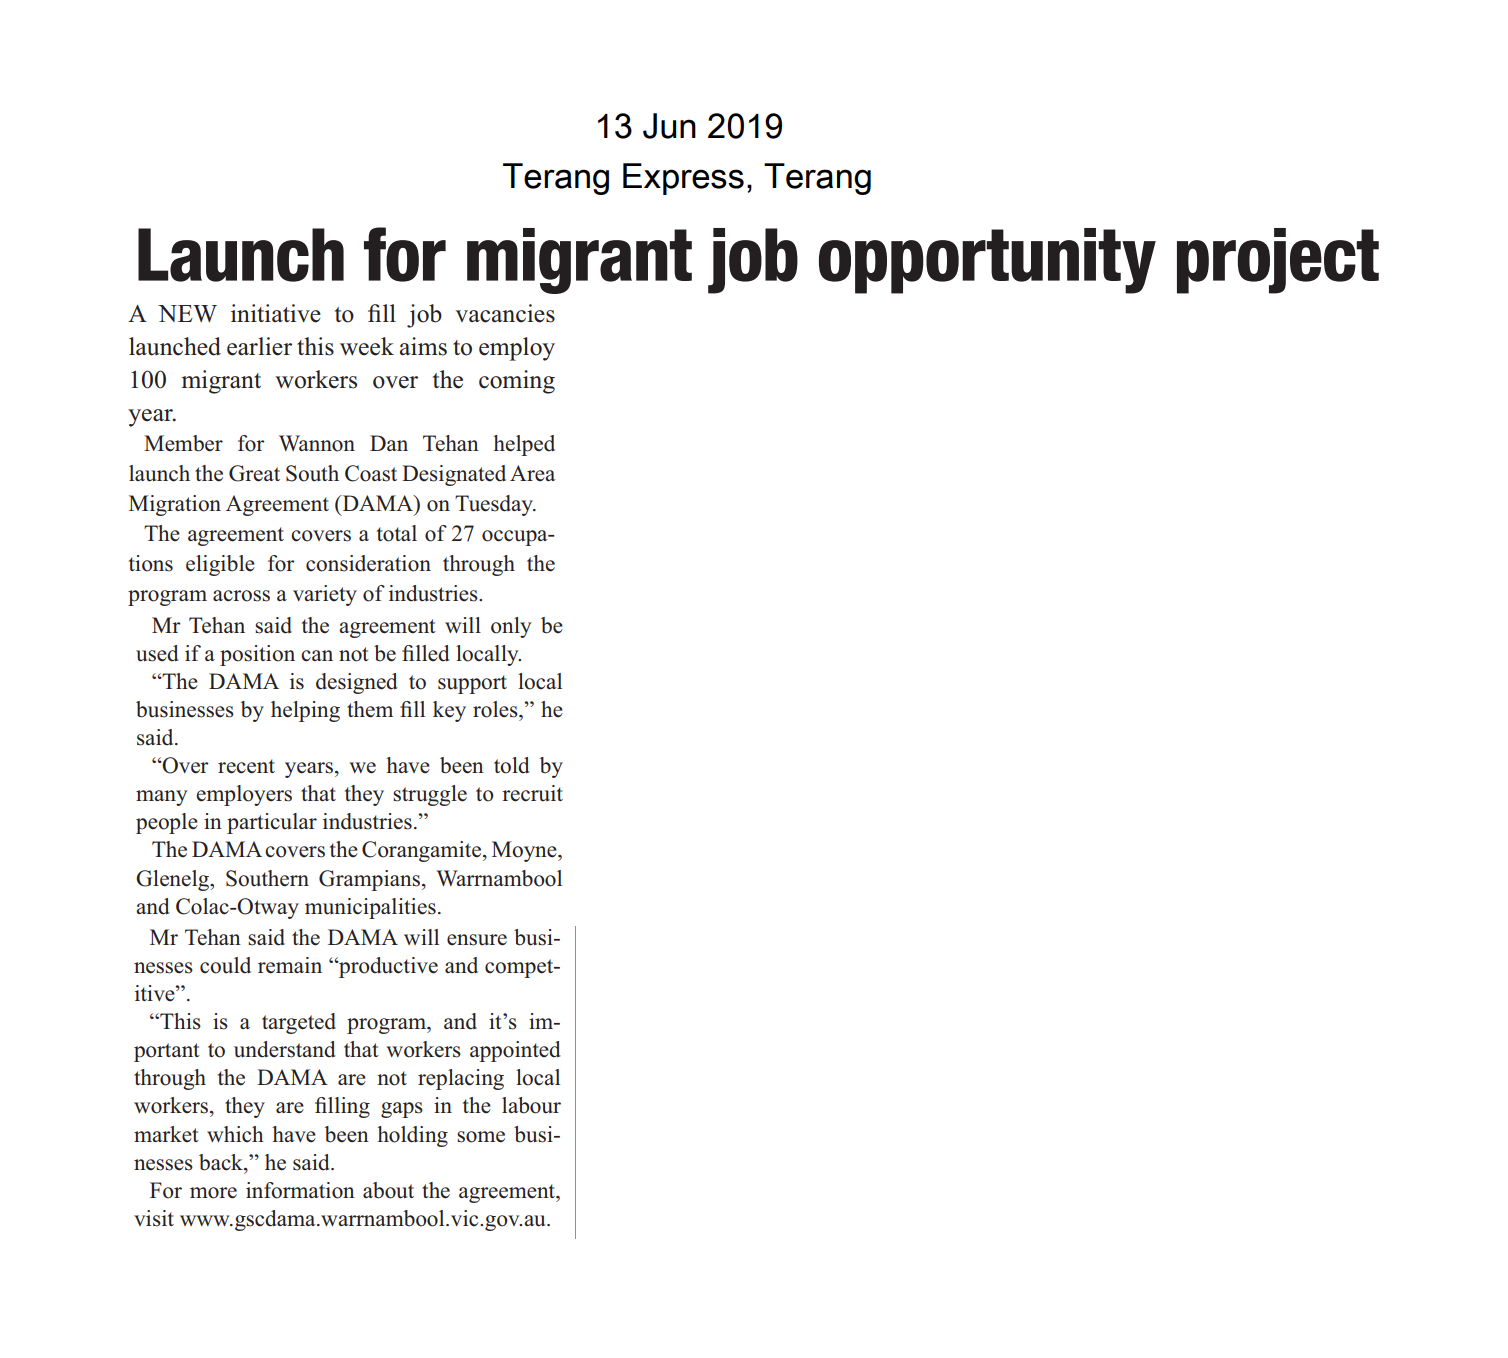 13062019 Launch for migrant job oppurtunity project - Terang Express.png